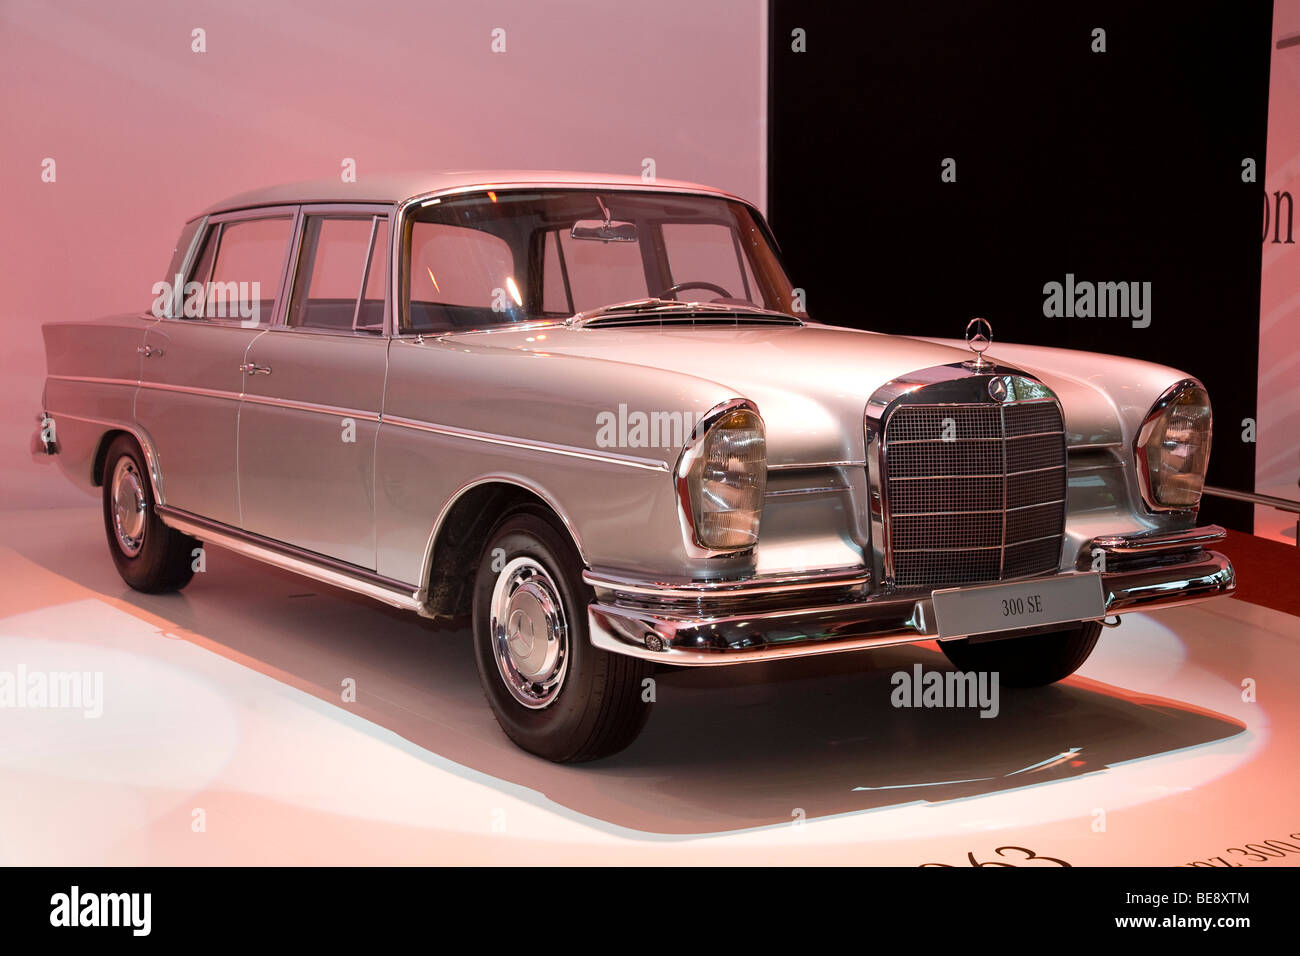 Mercedes 300 SE 1963 model at a European Motor Show Stock Photo